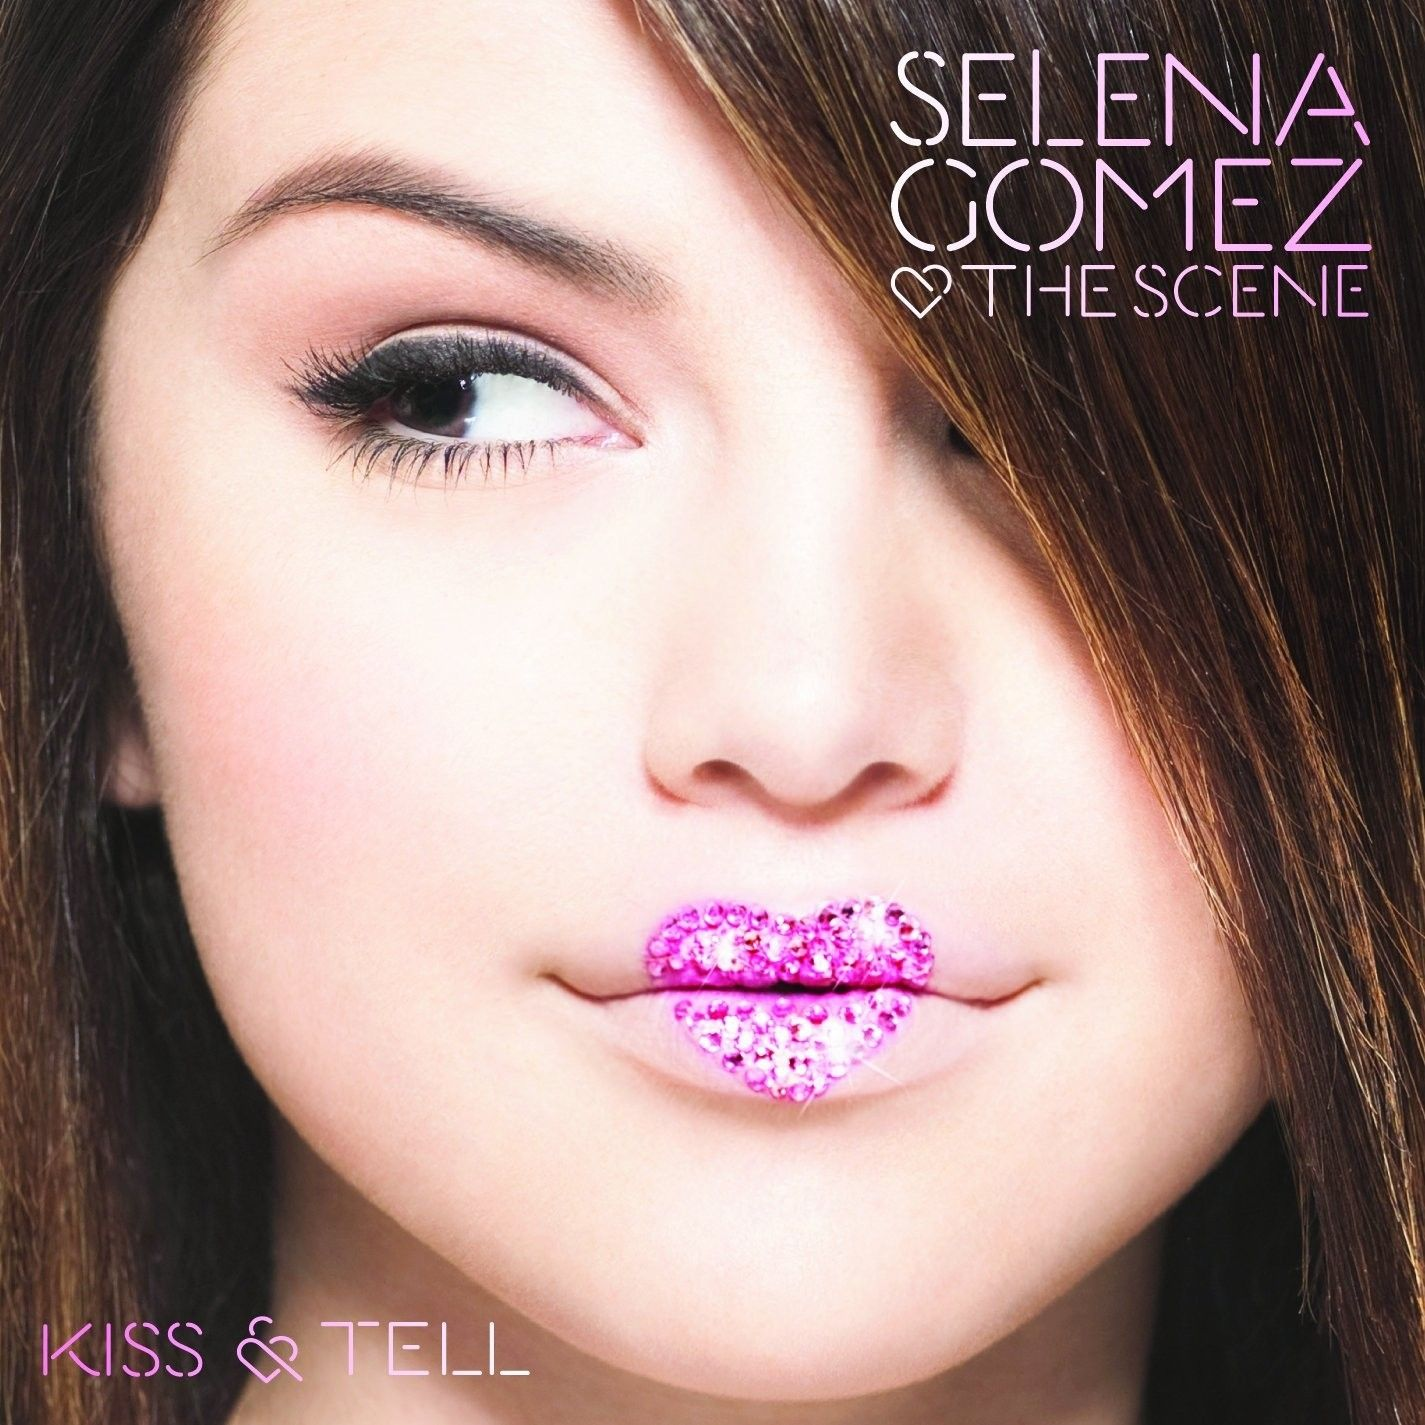 Selena Gomez & The Scene - Kiss And Tell album cover